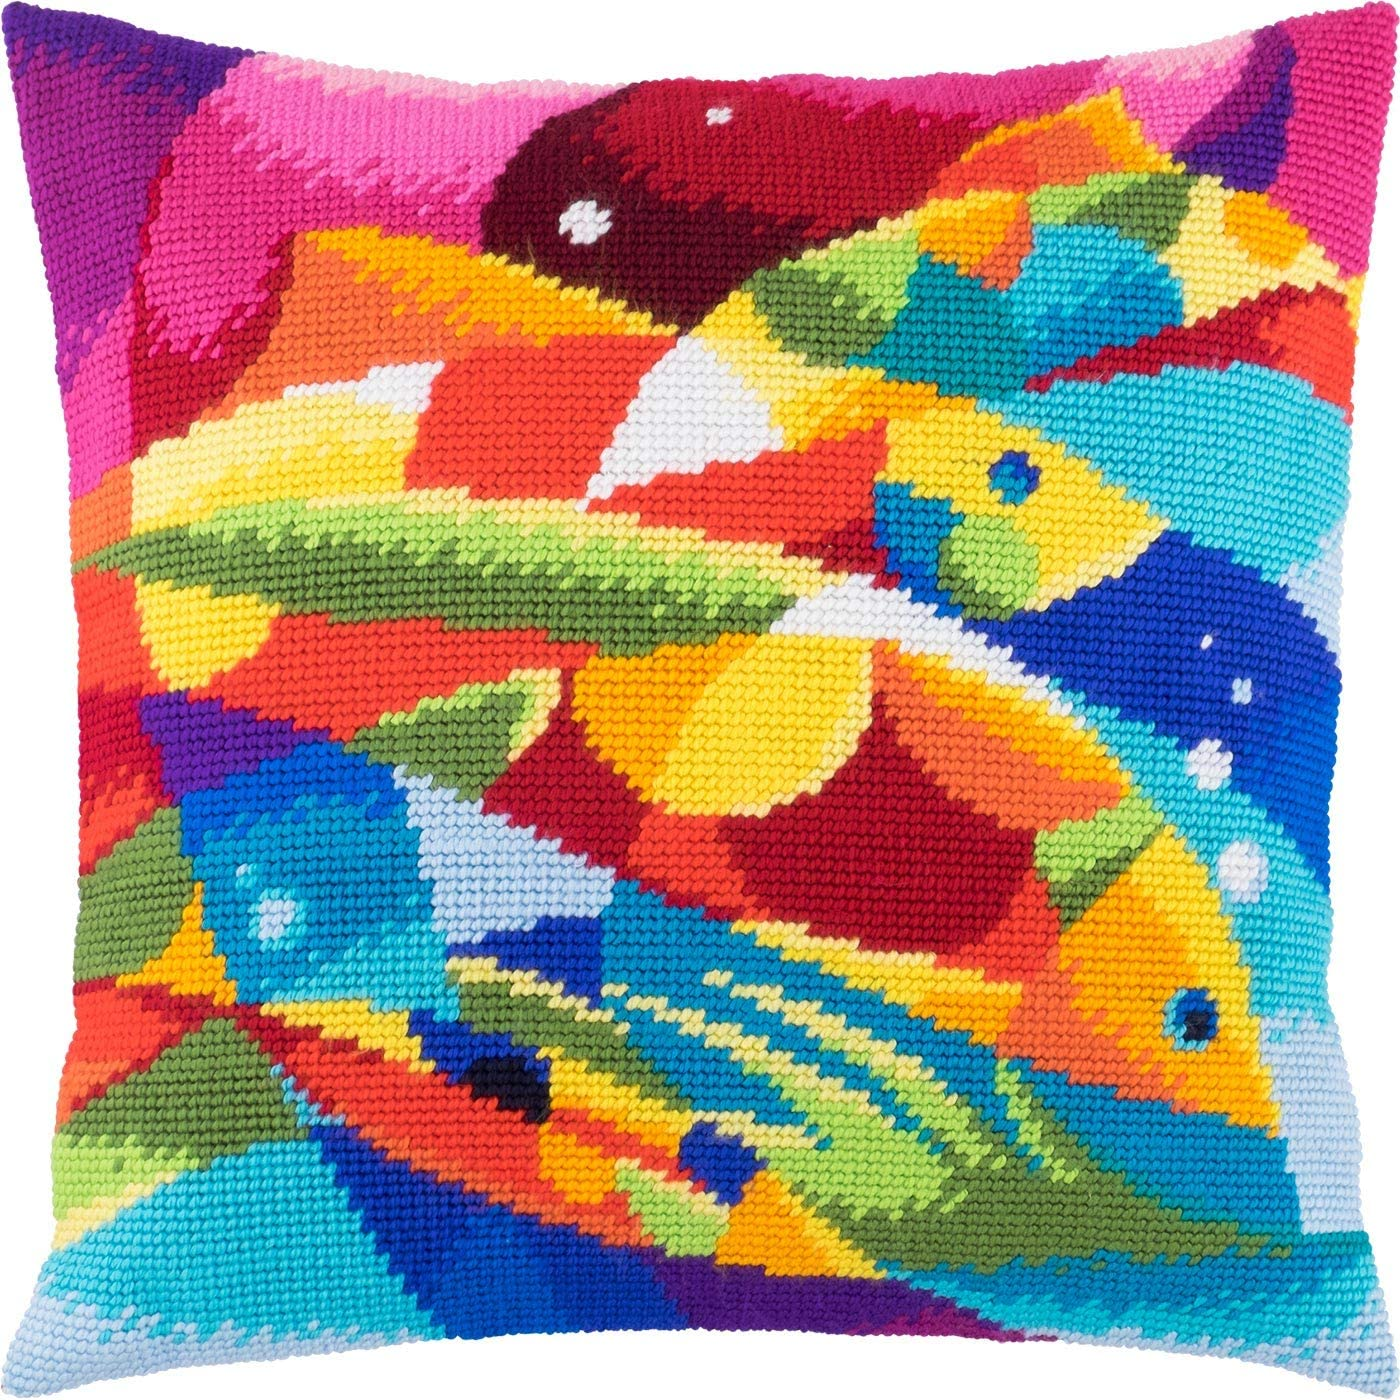 Abstract Fish. Needlepoint Kit. Cheap Throw Inches. SALENEW very popular! 16×16 Print Pillow